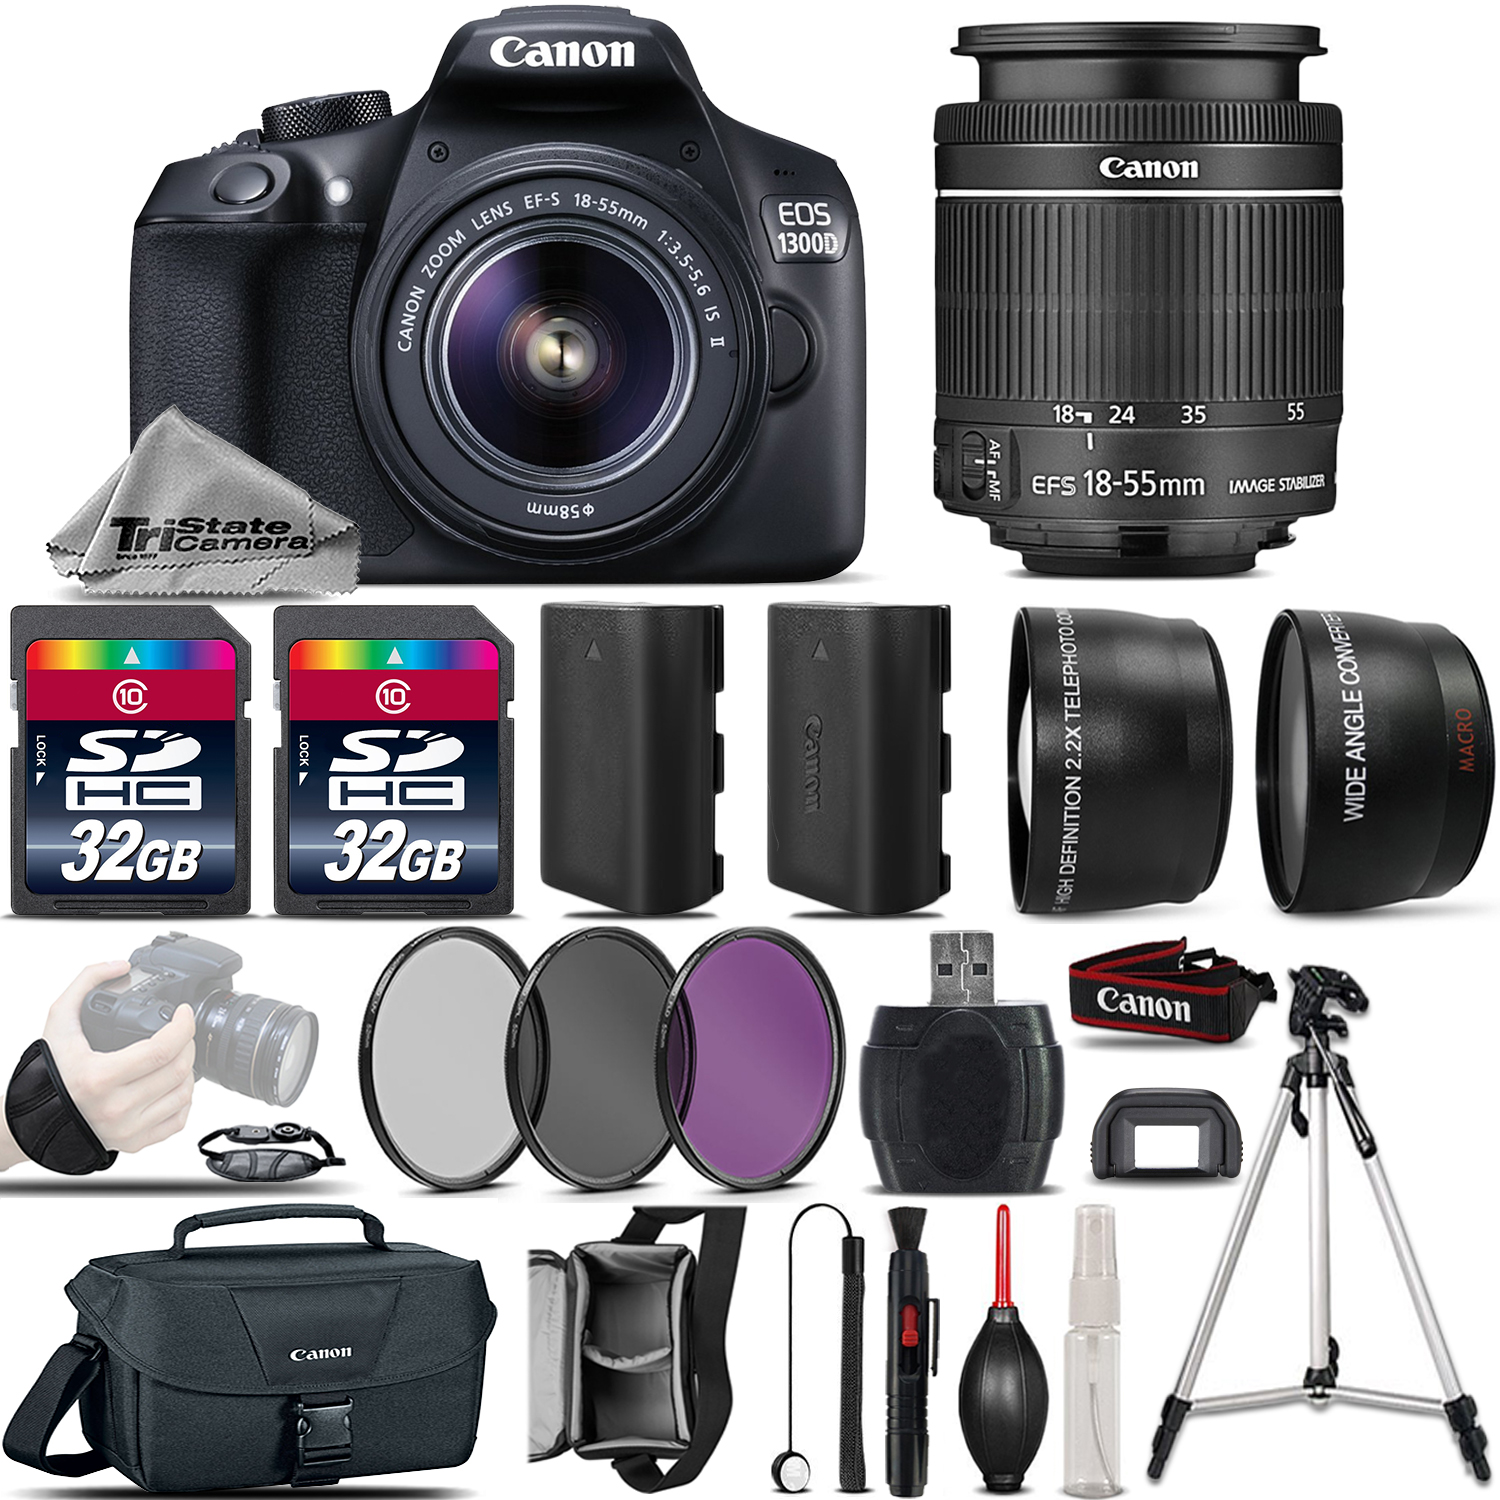 EOS Rebel 1300D Camera + 18-55mm IS II Lens + 64GB + EXTRA BATT & More! *FREE SHIPPING*